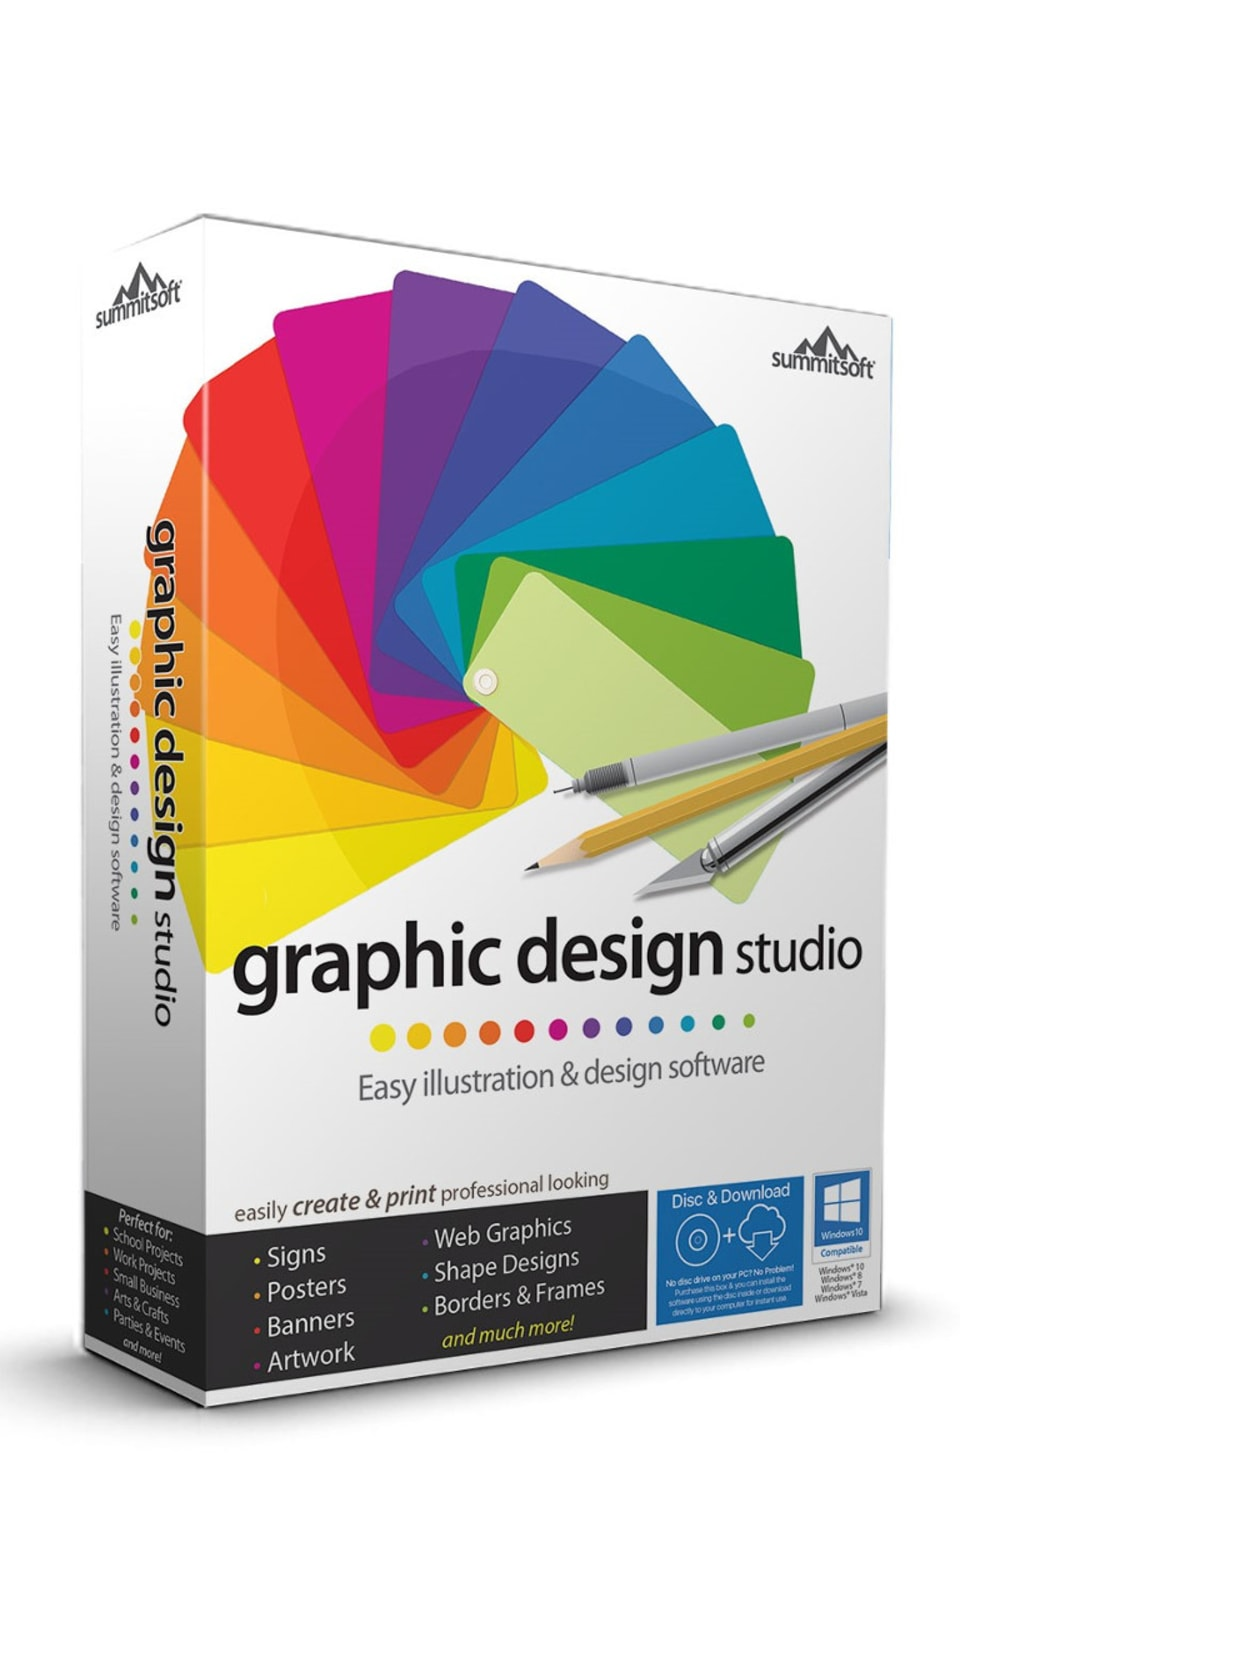 Graphic Design Studio Office Depot